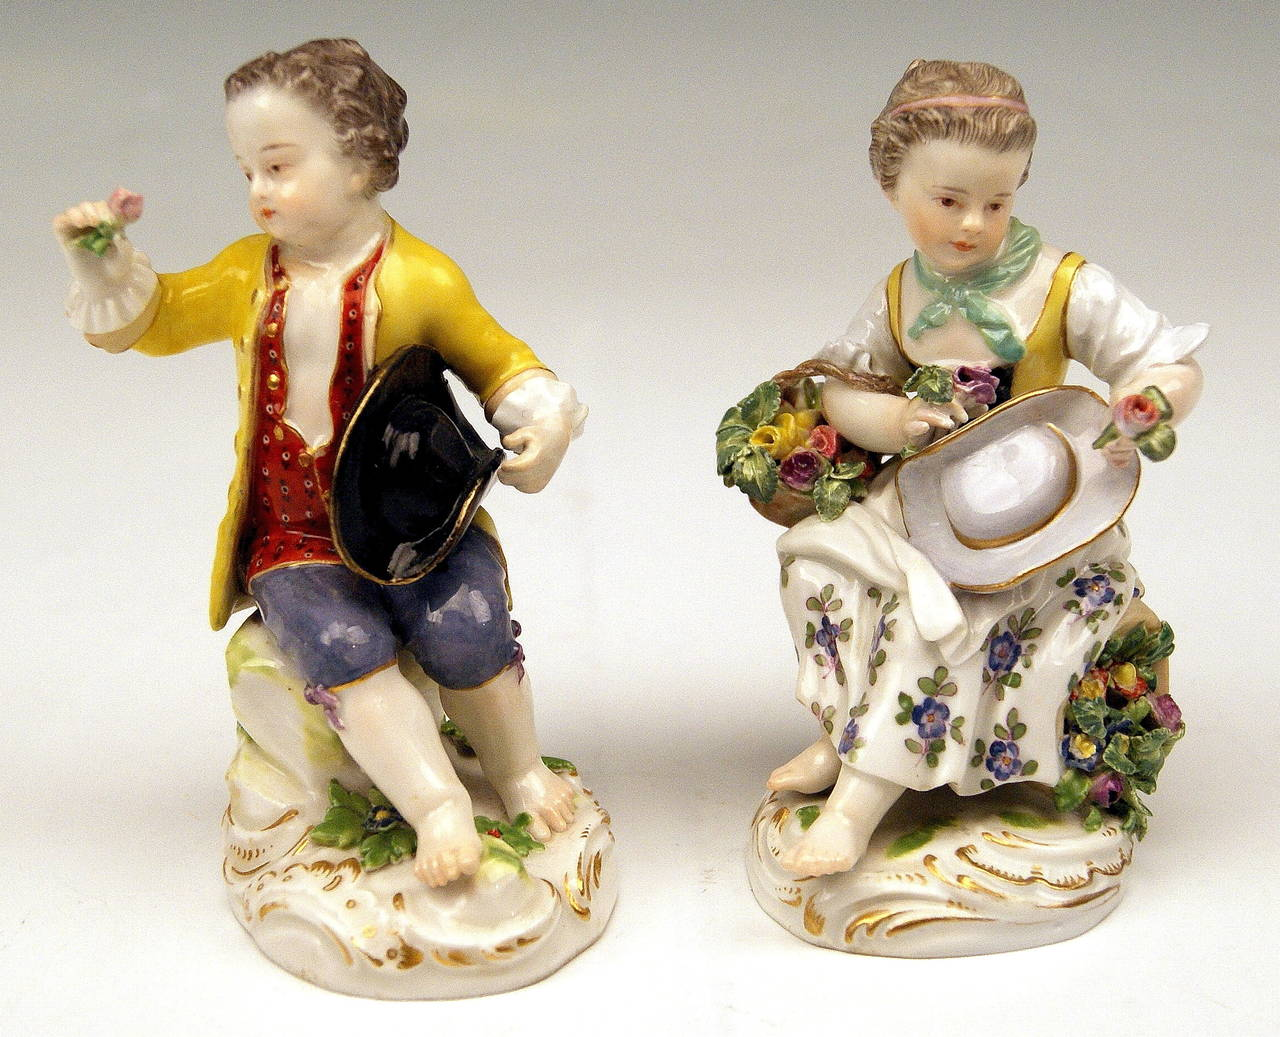 Meissen Pair of Gardener Child Rococo Figurines, Model 17 by Kaendler, 1870 In Excellent Condition For Sale In Vienna, AT